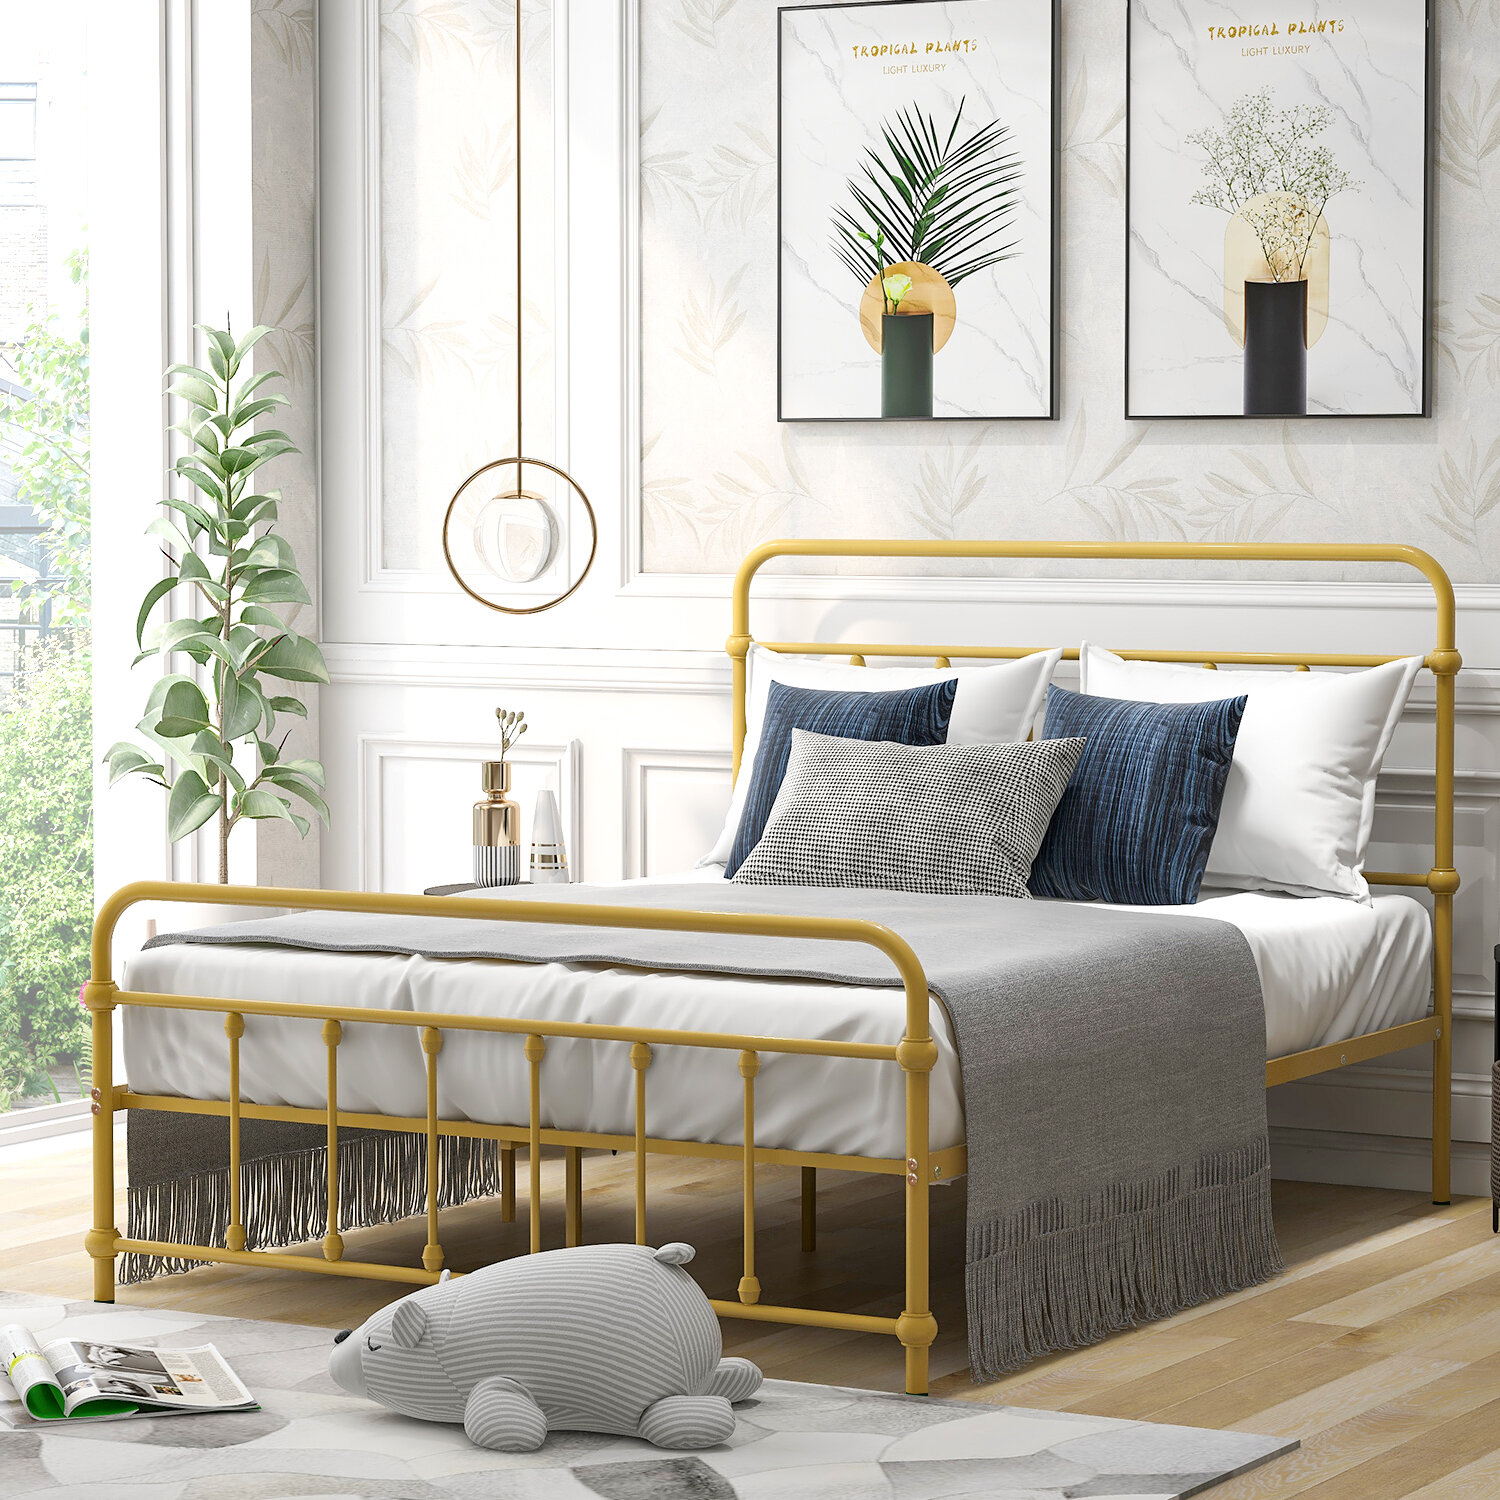 17 Stories Full Size Metal Platform Bed With Headboard And Footboard Iron Bed Frame For Bedroom No Box Spring Needed Yellow Wayfair Ca